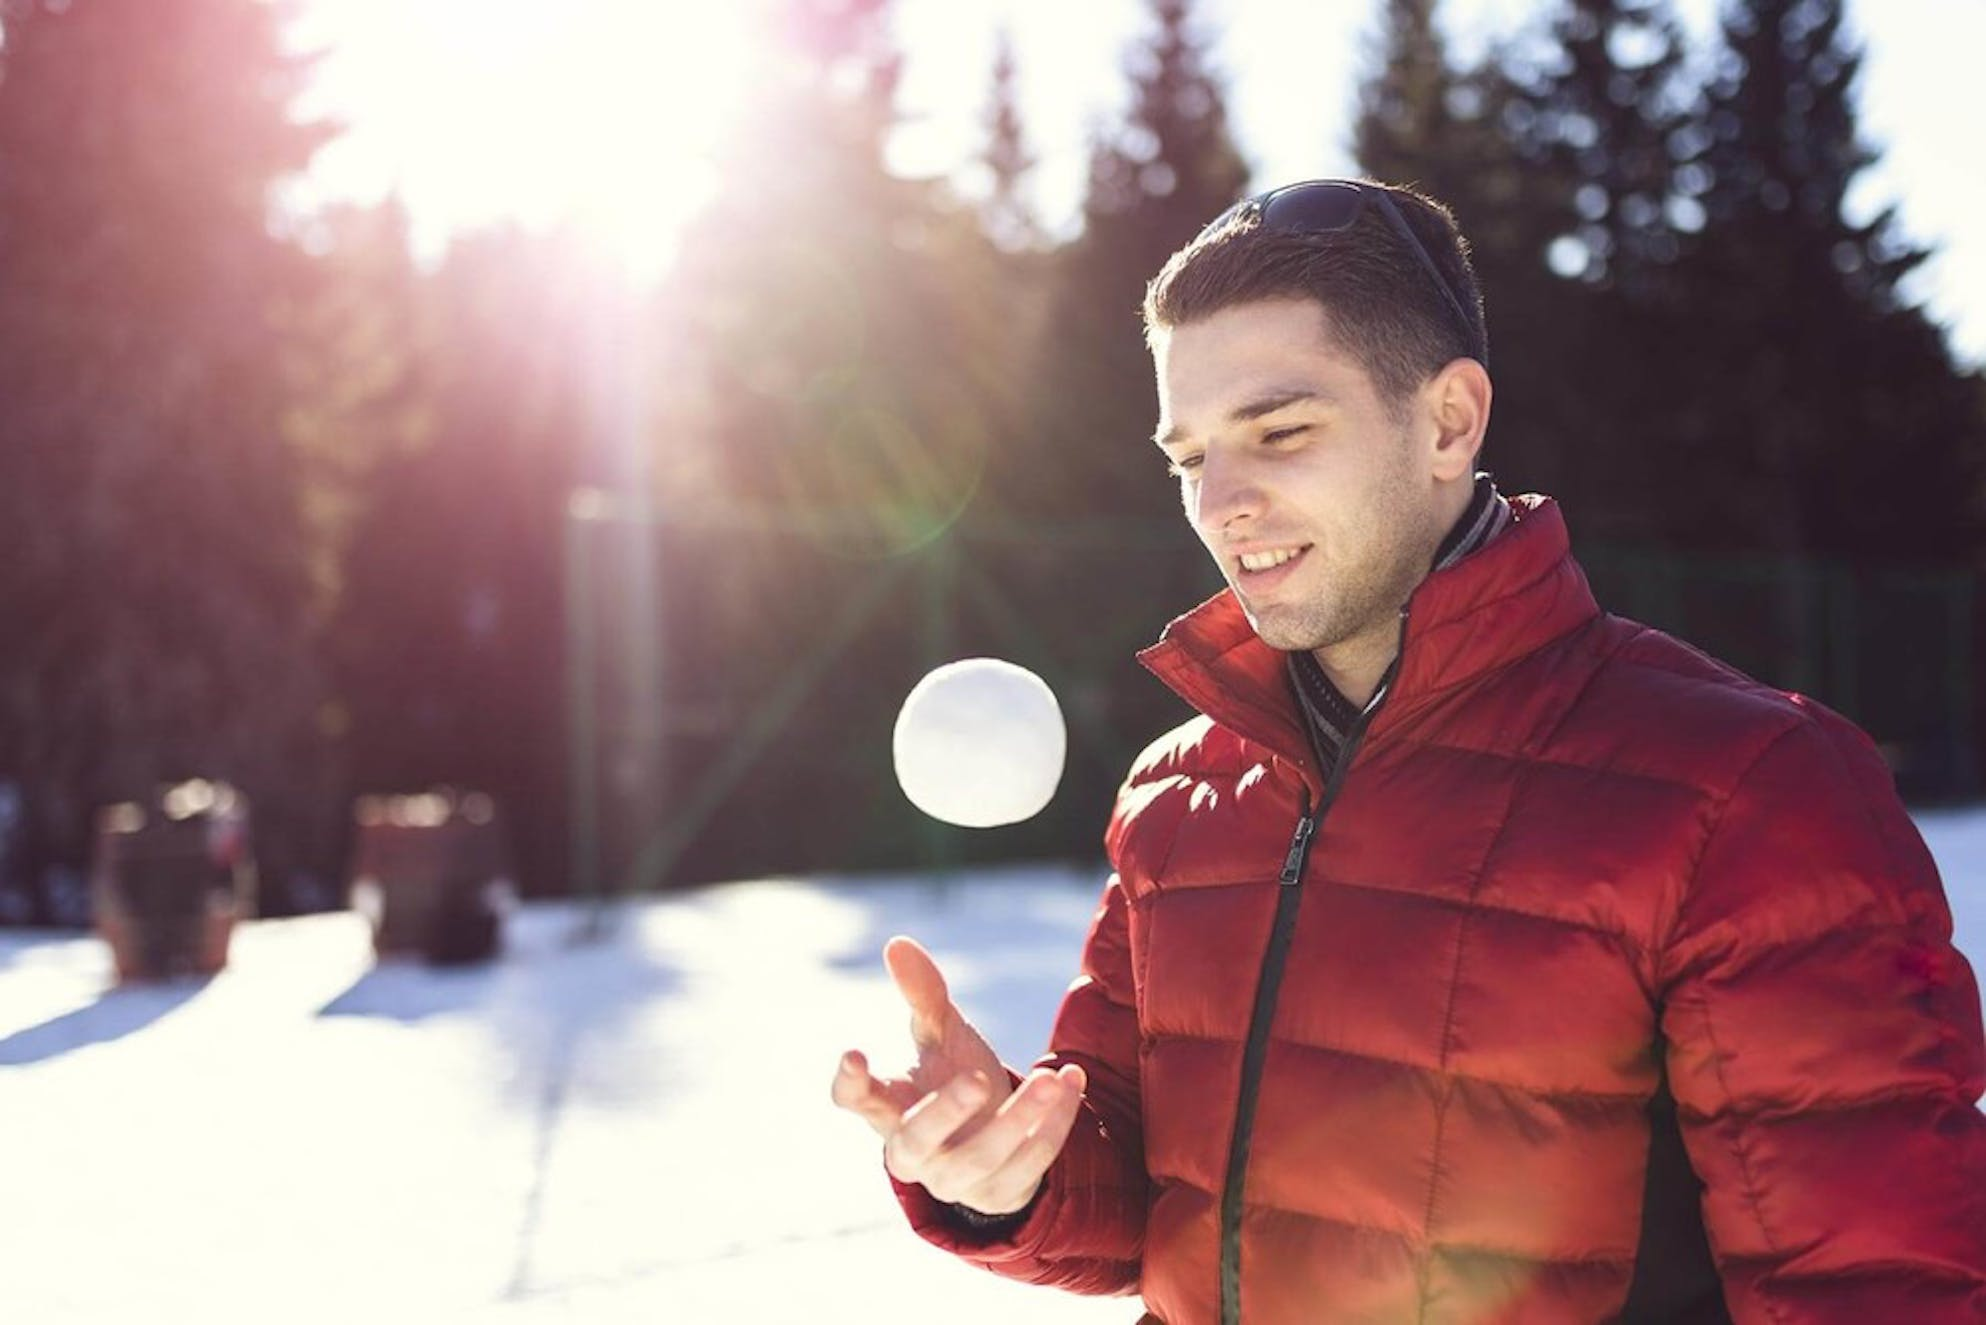 The debt snowball method is effective because of its psychology.